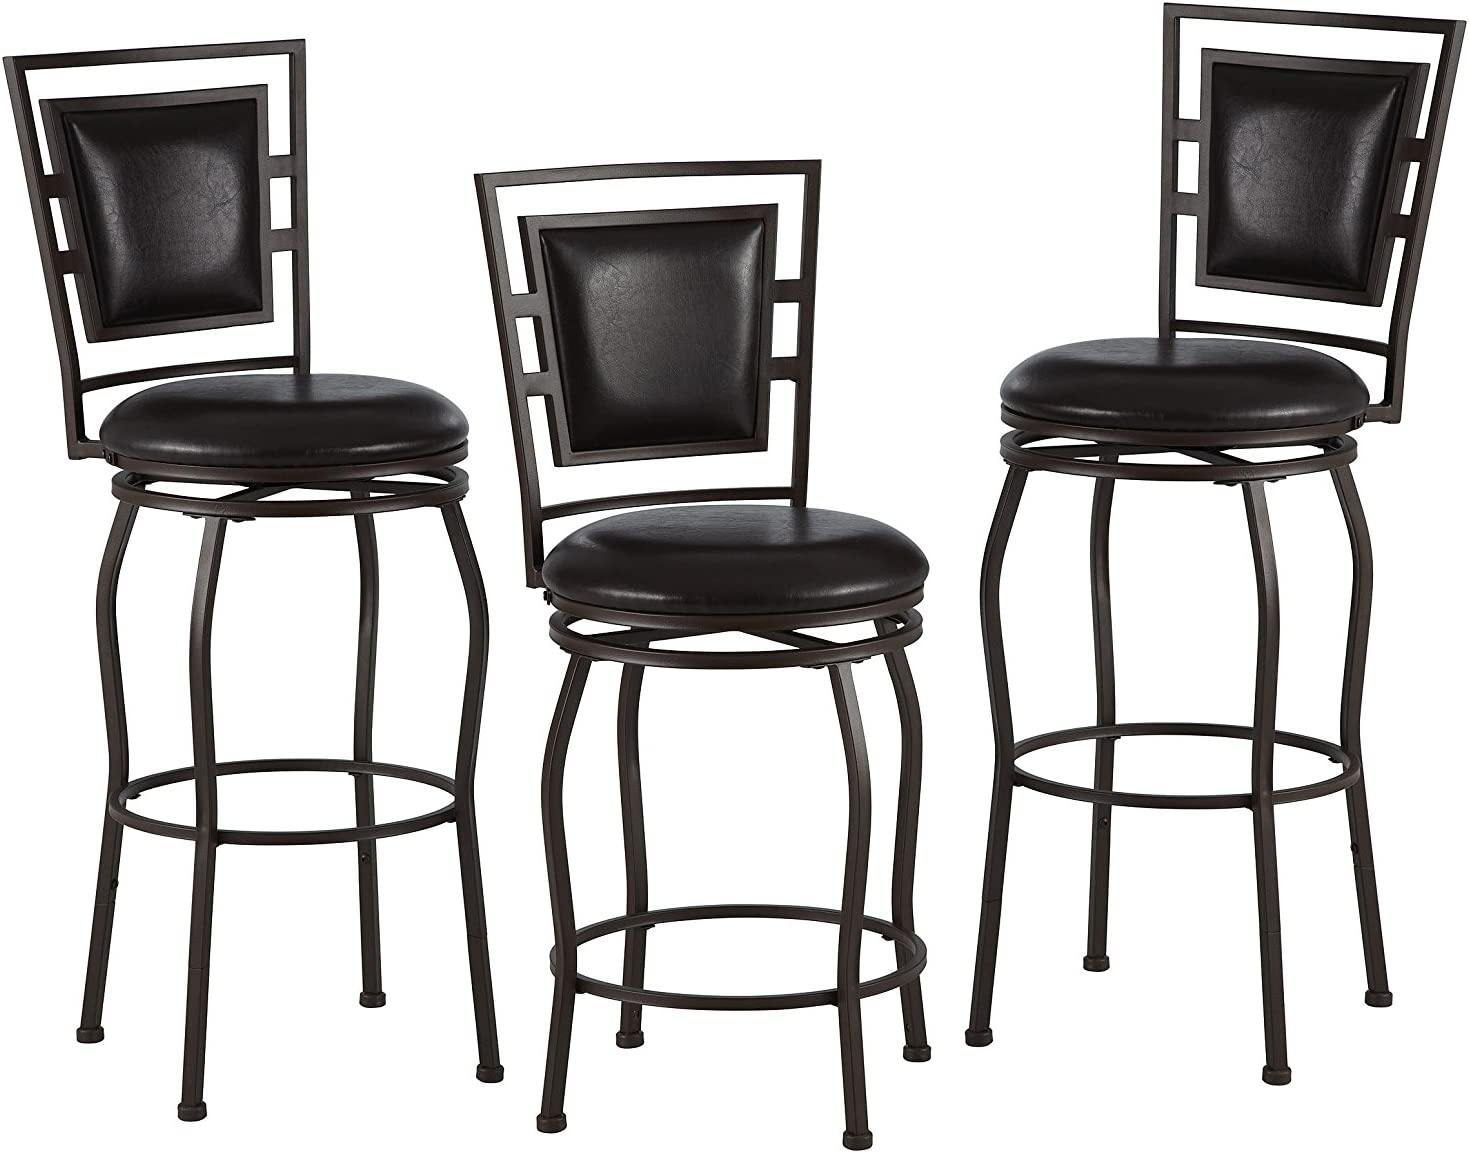 Linon Townsend Three Piece Adjustable Stool Set with Swivel Seat